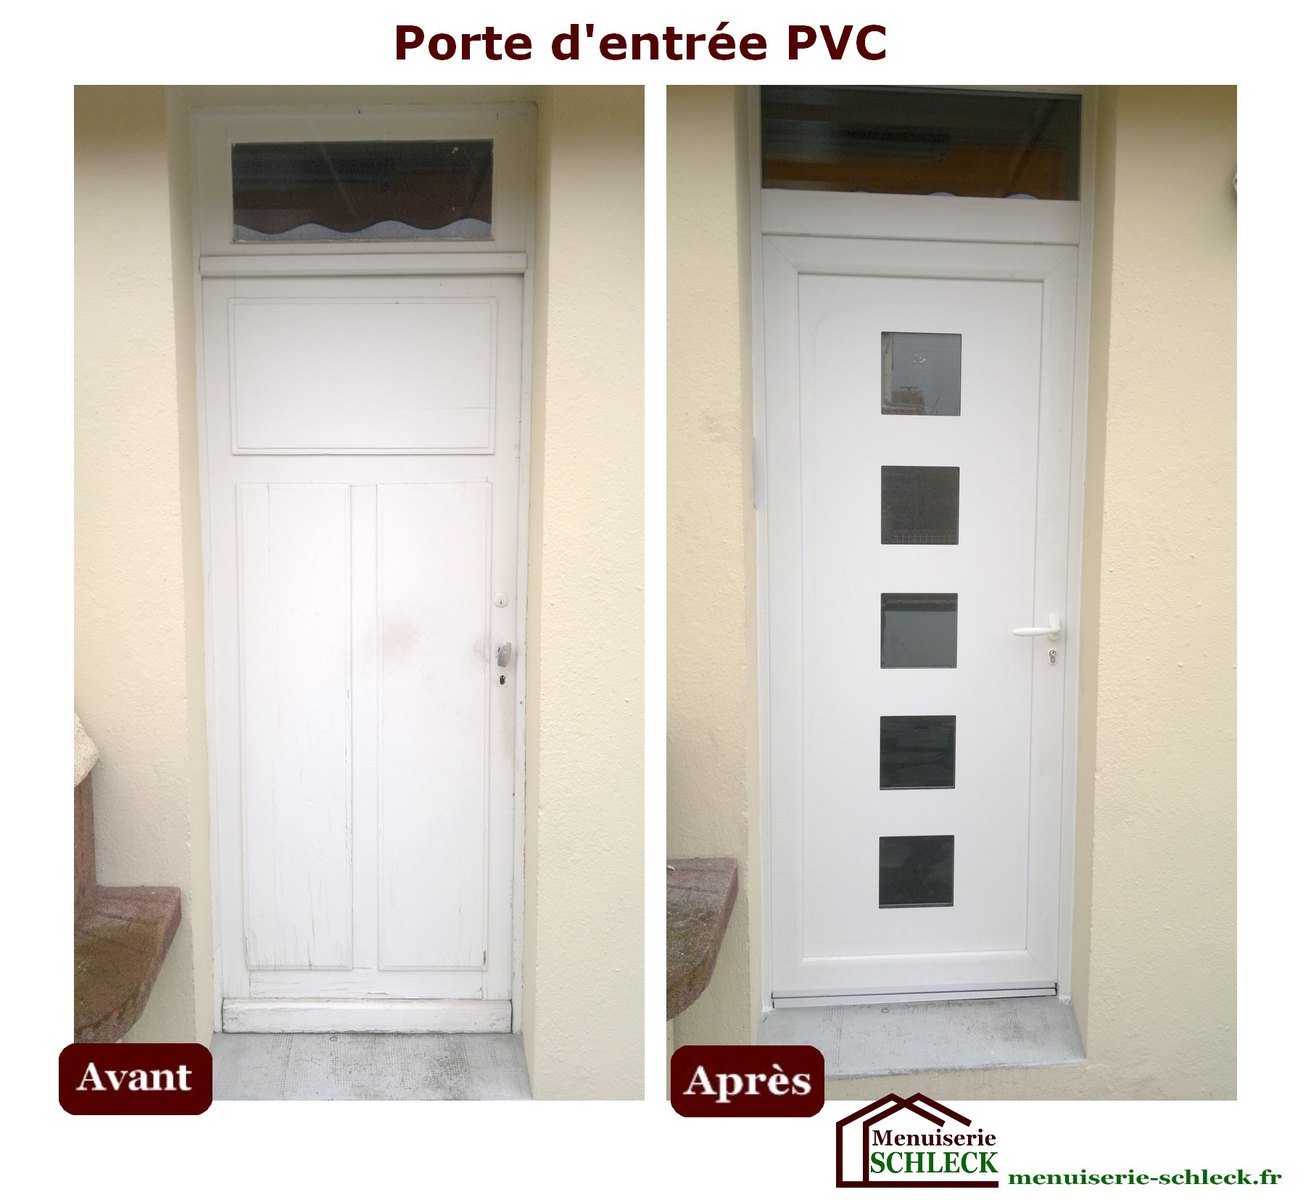 Menuiserie r novation schleck nos r alisations for Prix porte d entree pvc